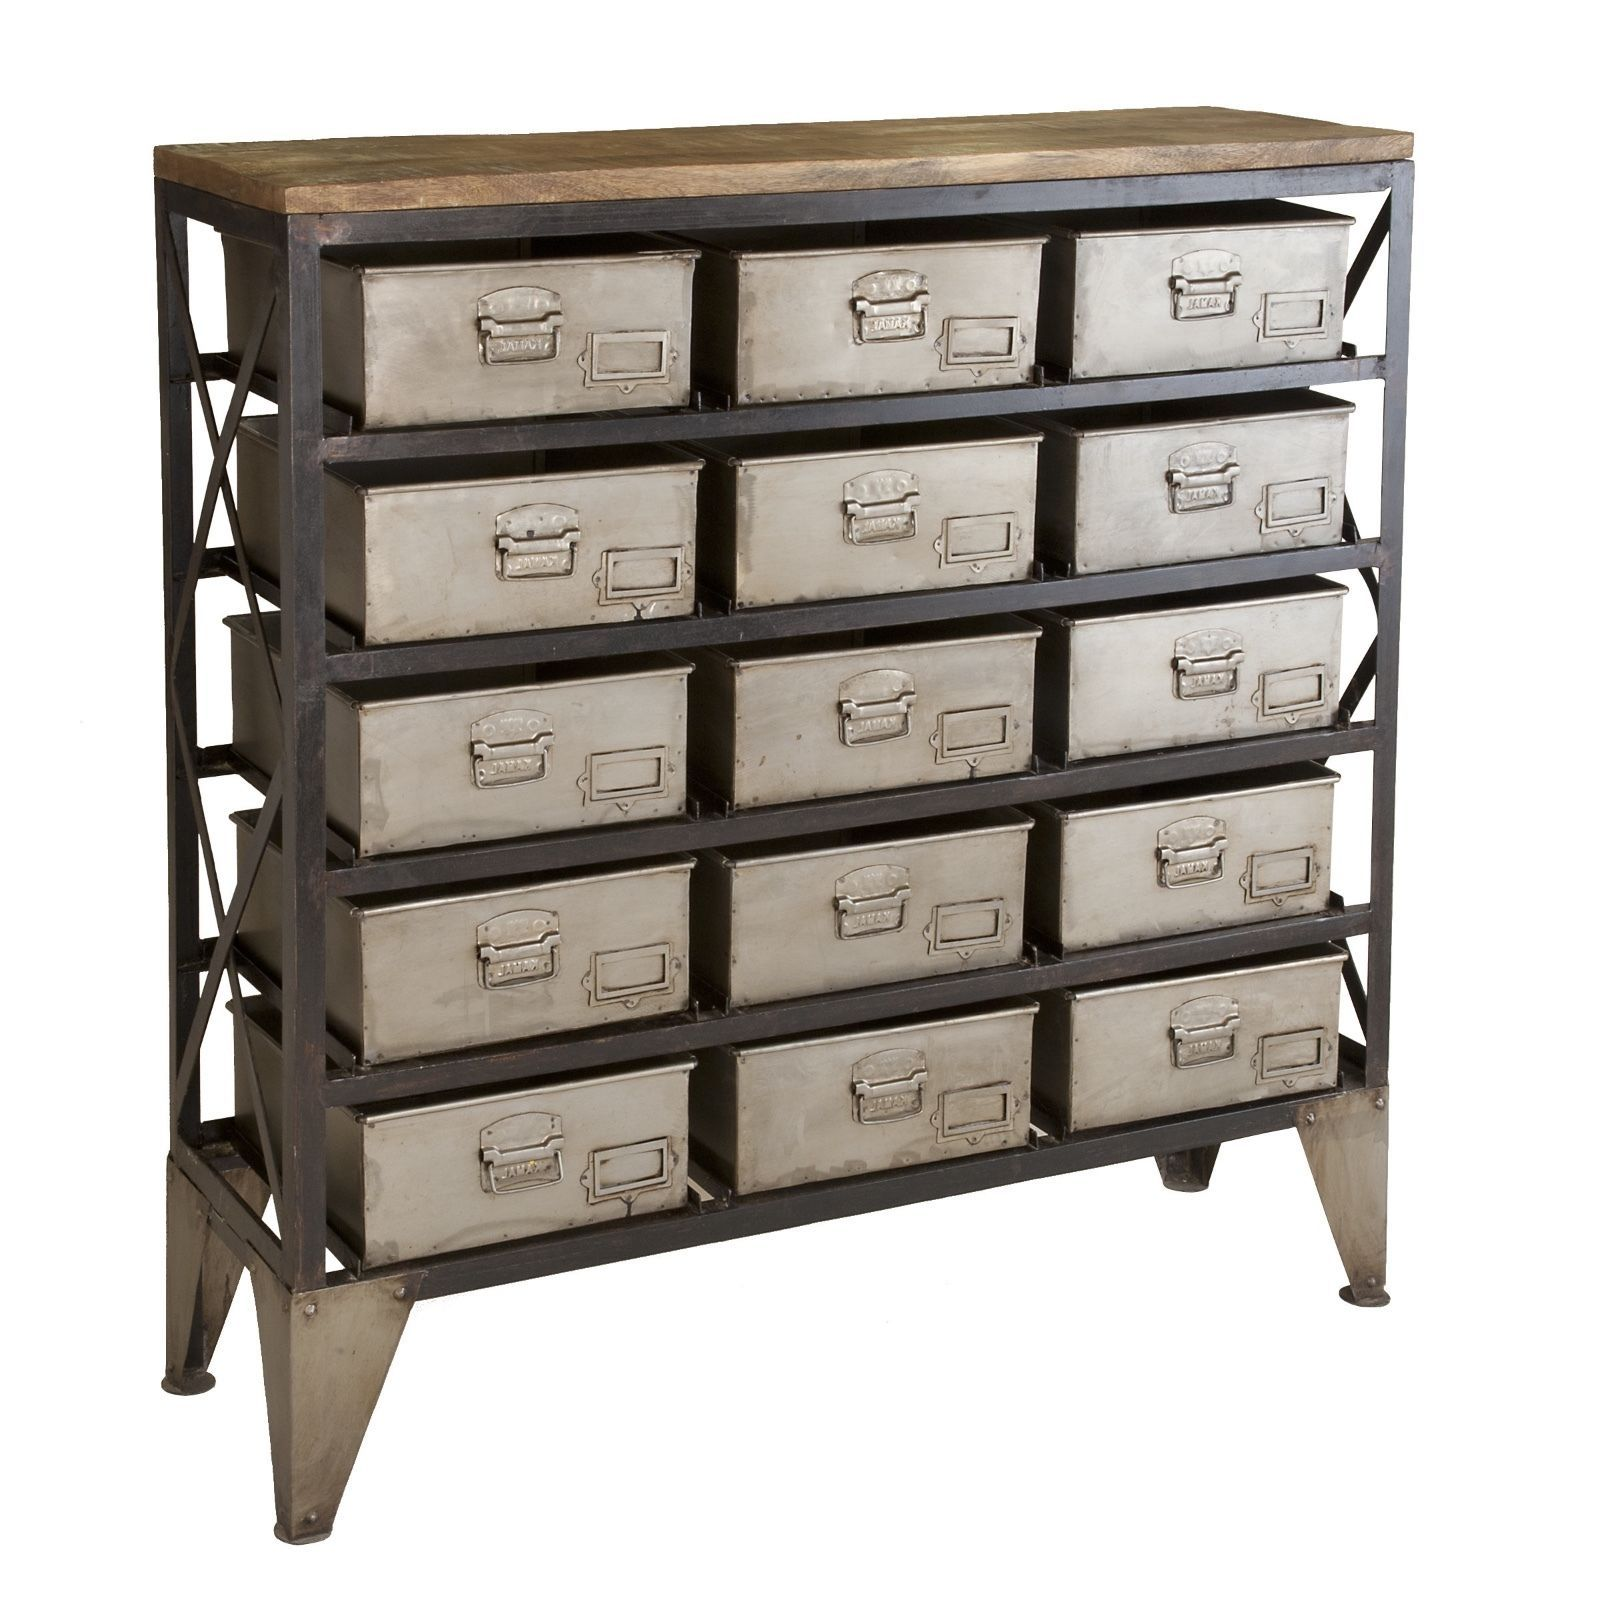 S L1600. S L1600. French Farmhouse Urban Industrial Hardware Zinc Style Apothecary  Cabinet Storage